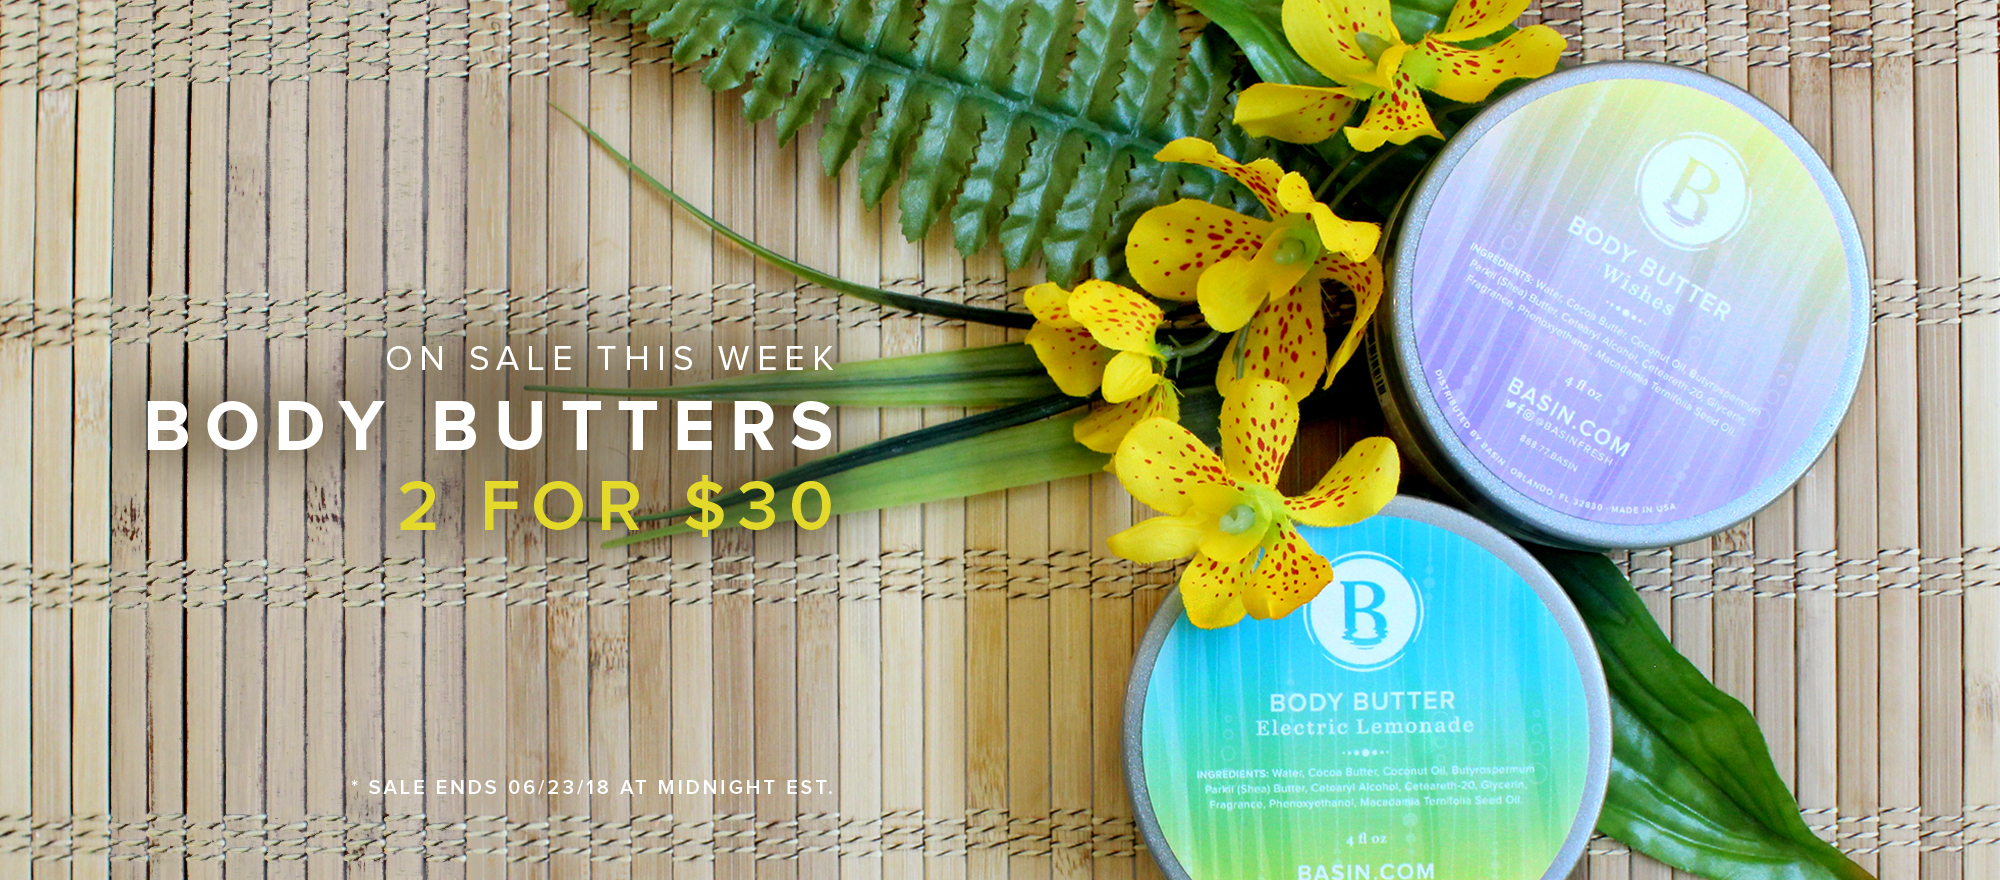 Body Butter Sale